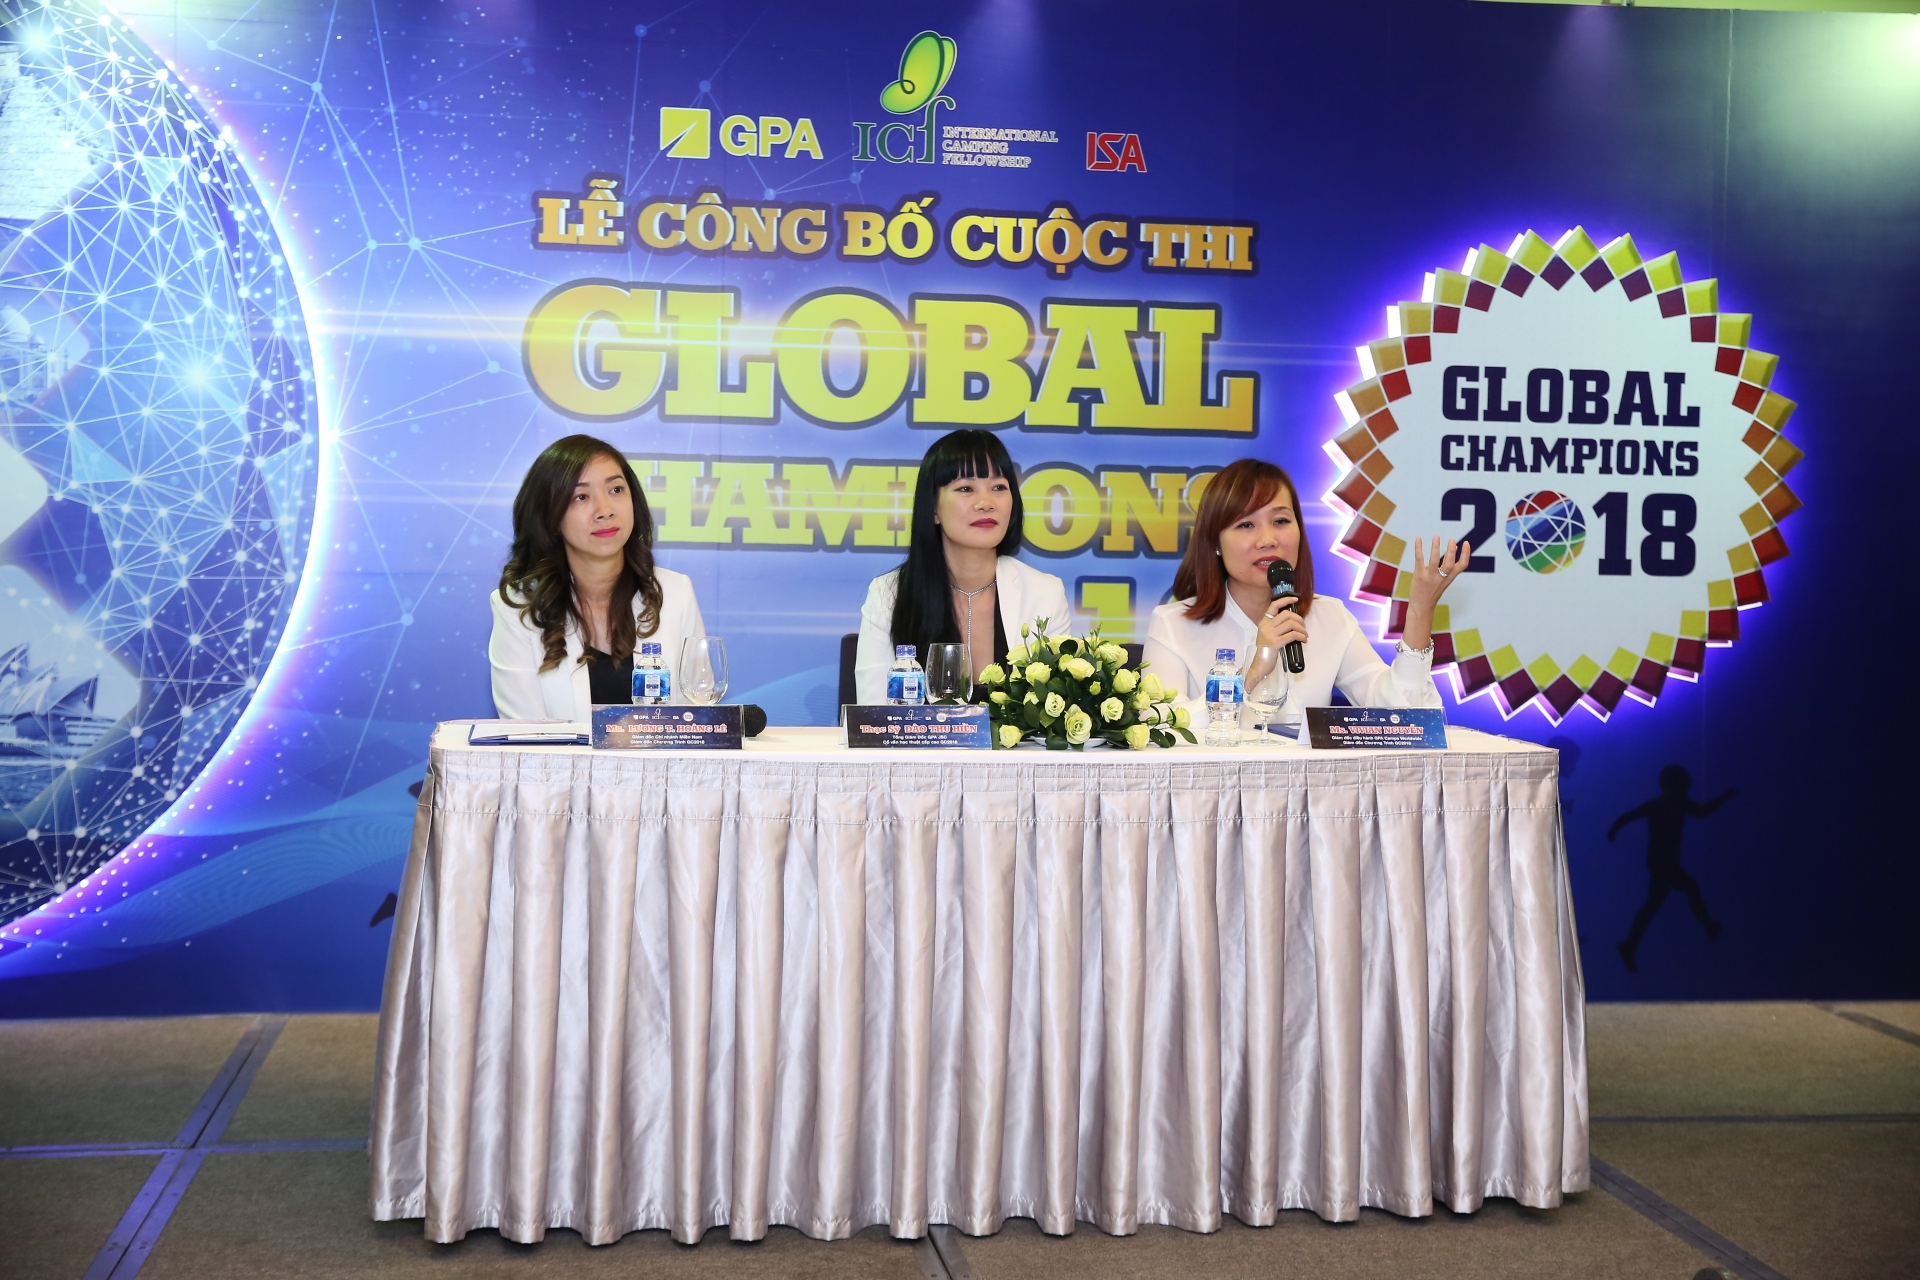 Global Champions 2018 opens for young English language learners